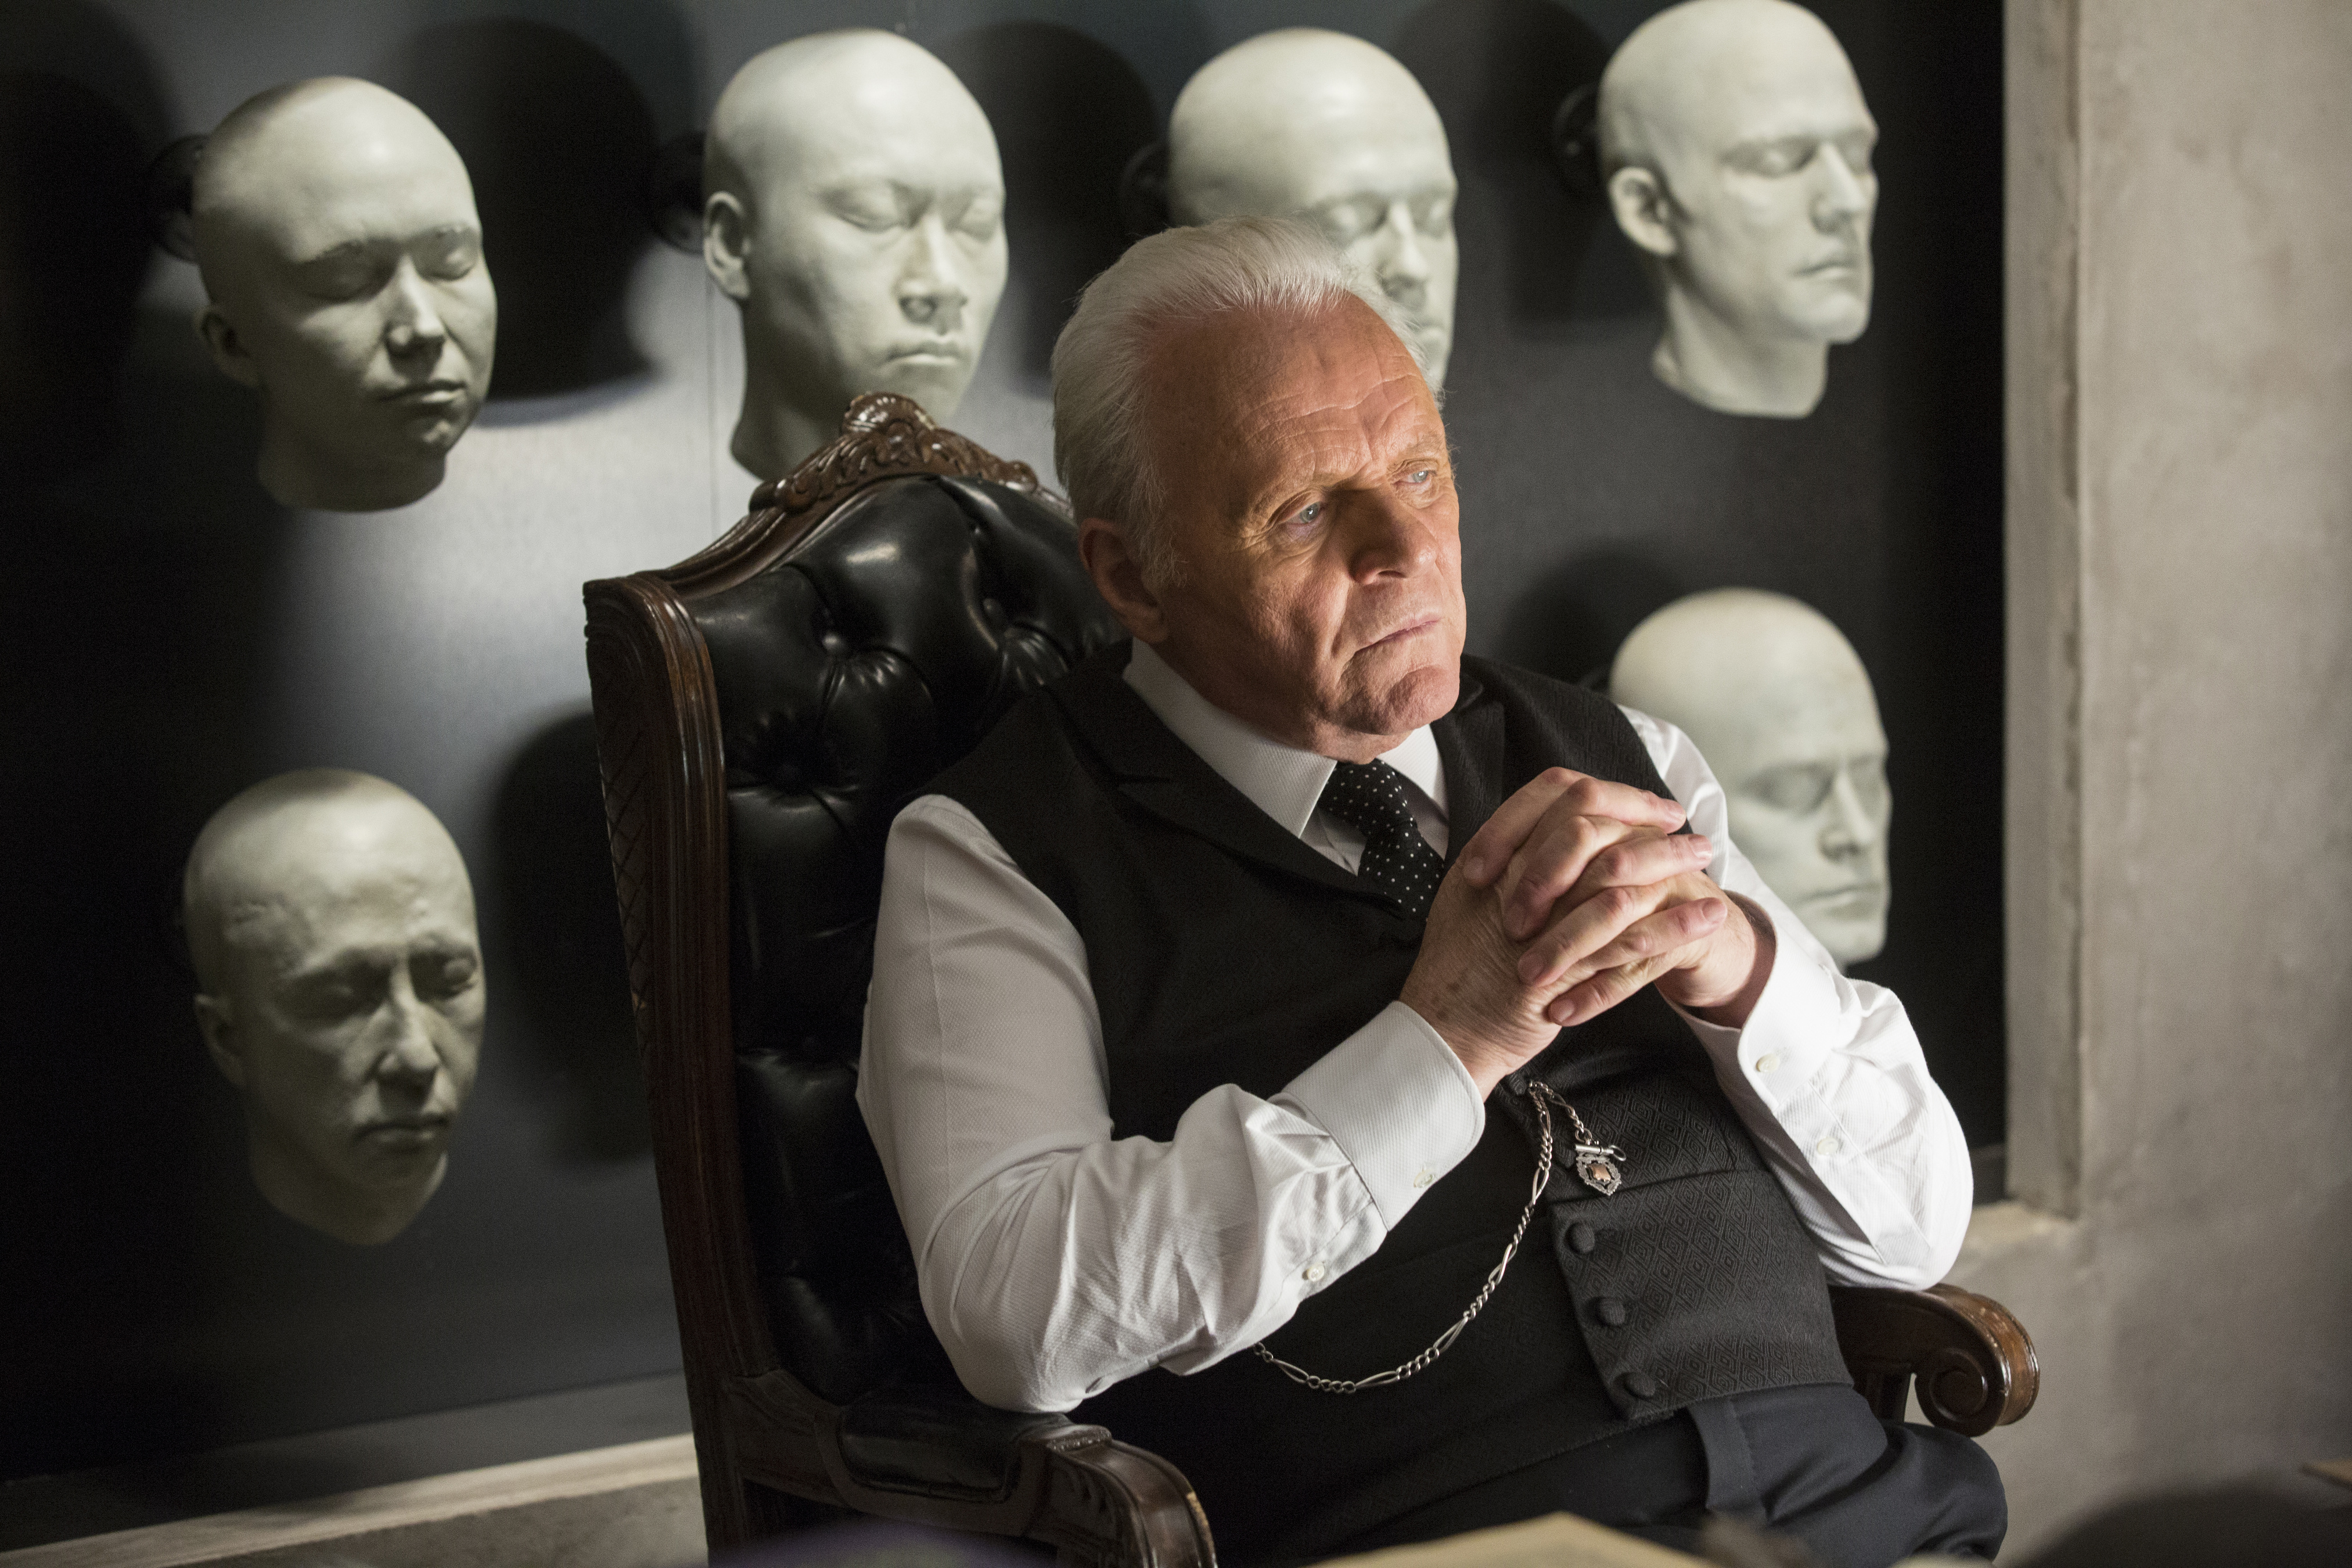 Anthony Hopkins plays the role of Dr. Robert Ford, the founder of Westworld.